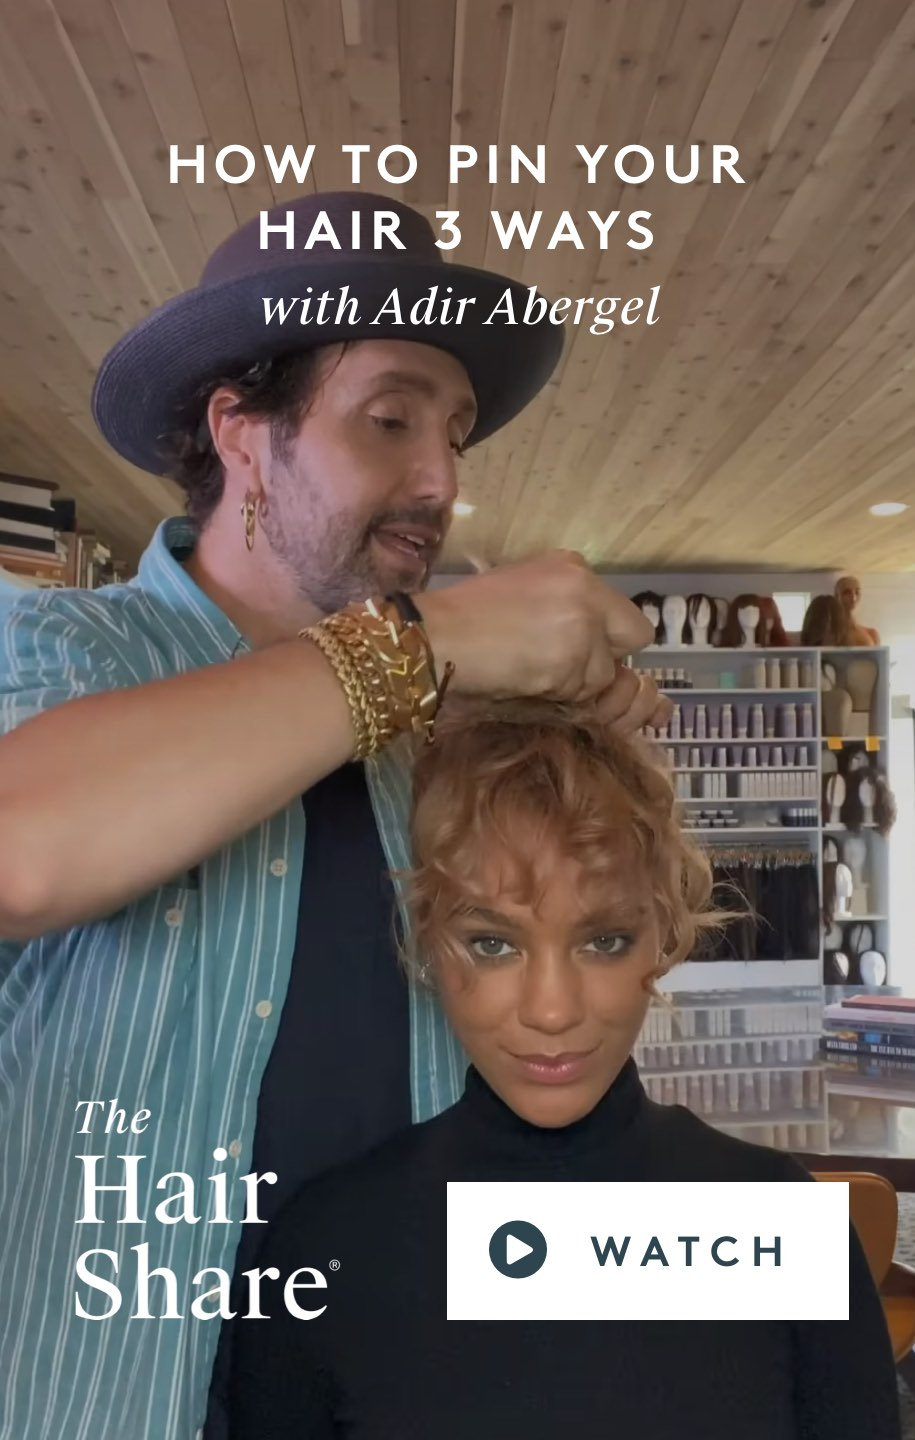 How To Pin Your Hair Three Ways With Adir Abergel